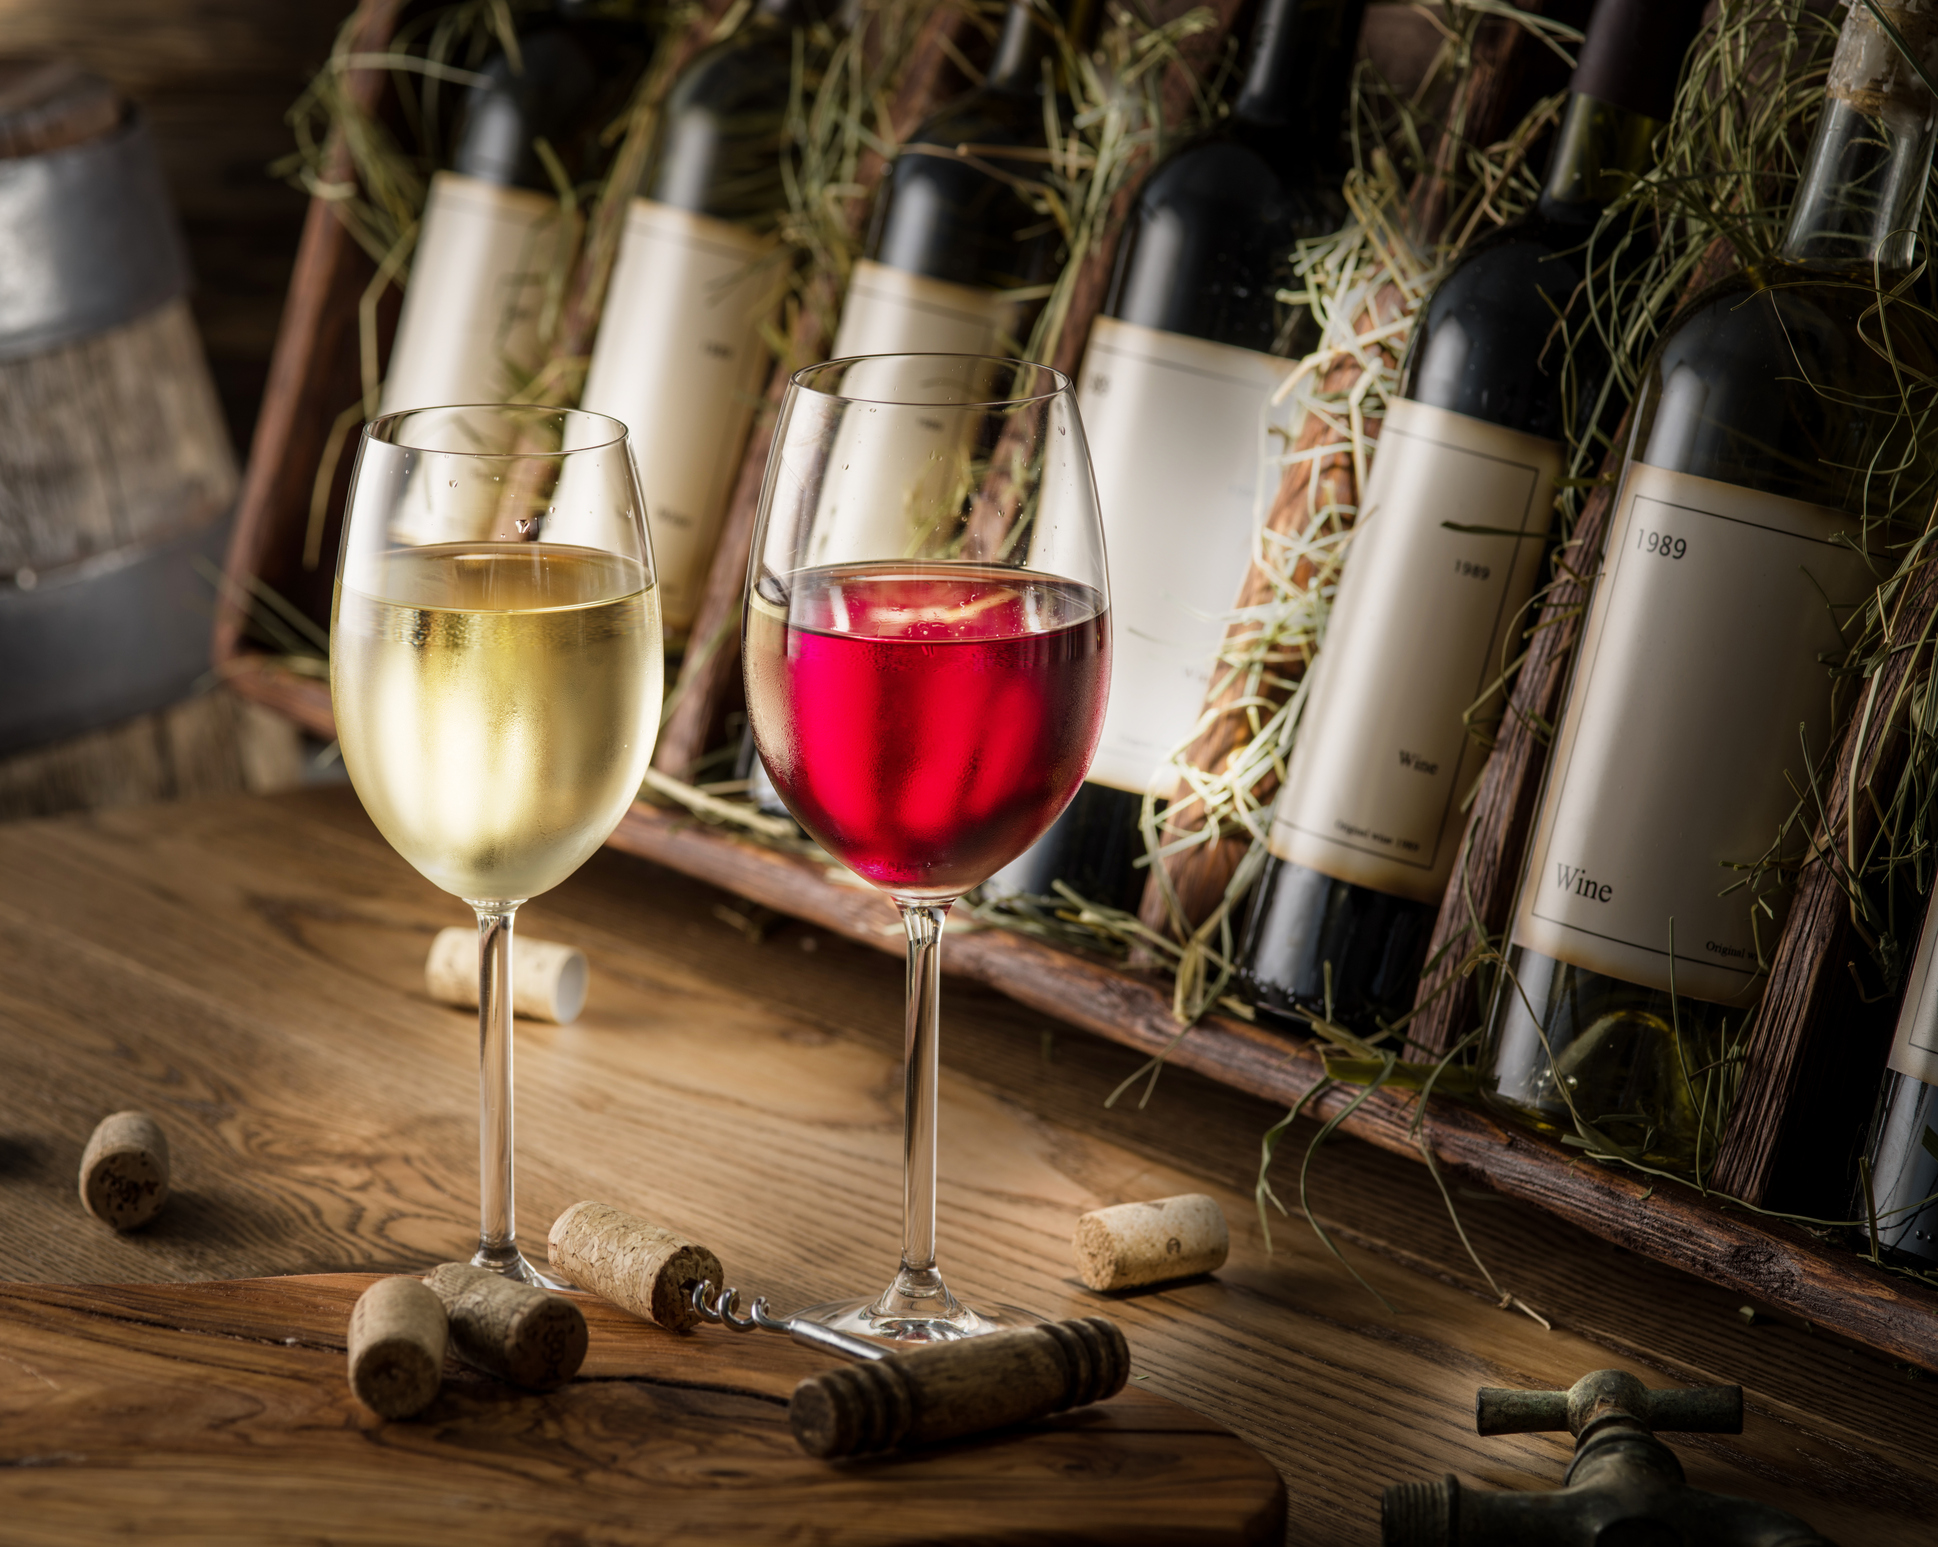 5 Reasons I Love Wine… And You Should Too